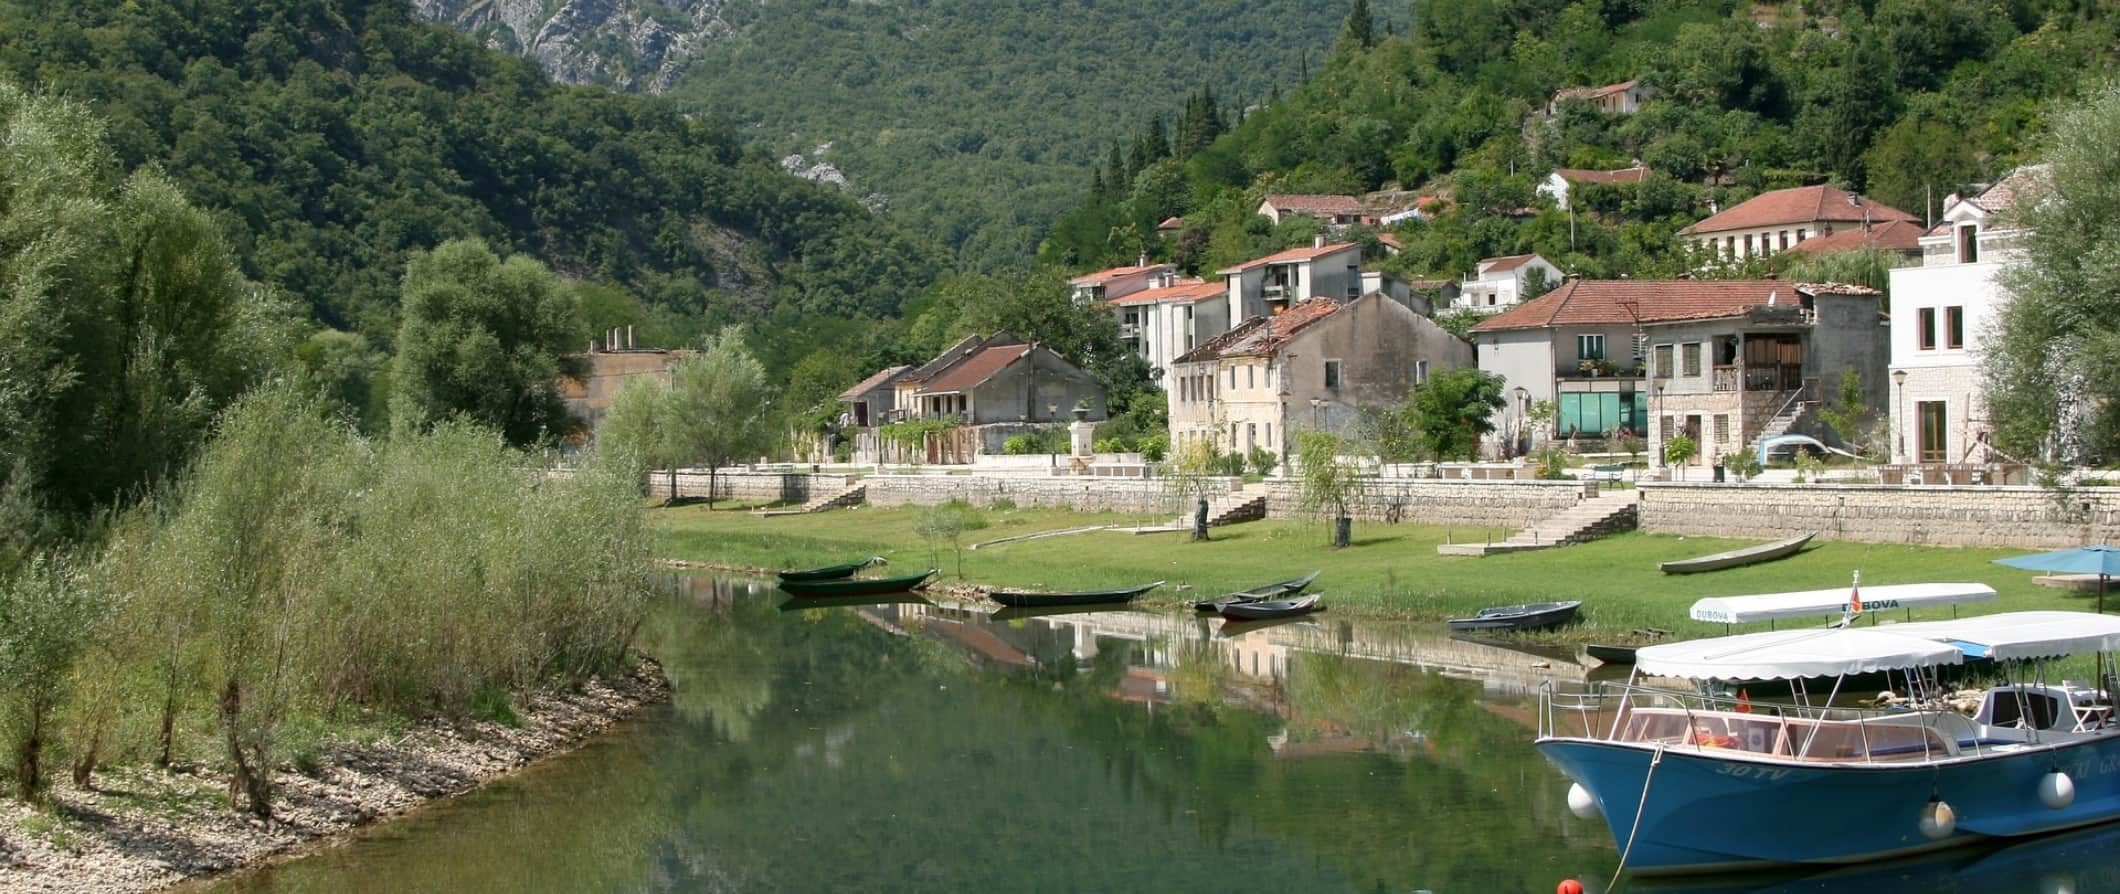 A small village surrounded by trees on the banks of a river in Montenegro